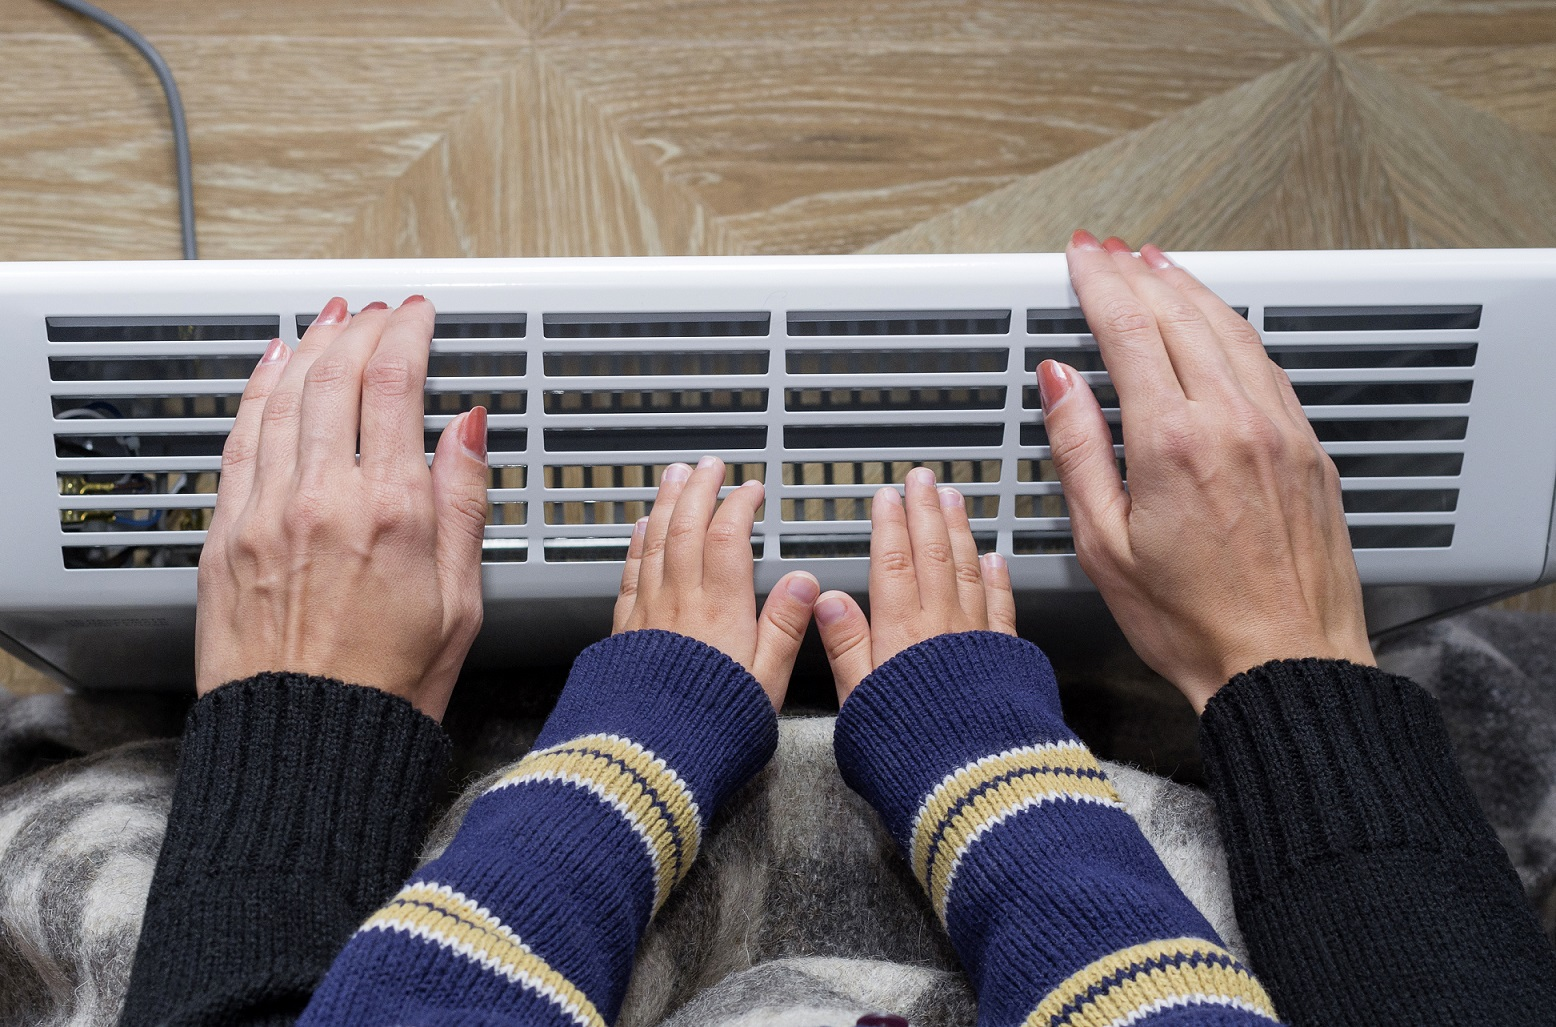 Blog: Progressive policy could reduce energy bills for 70% of households